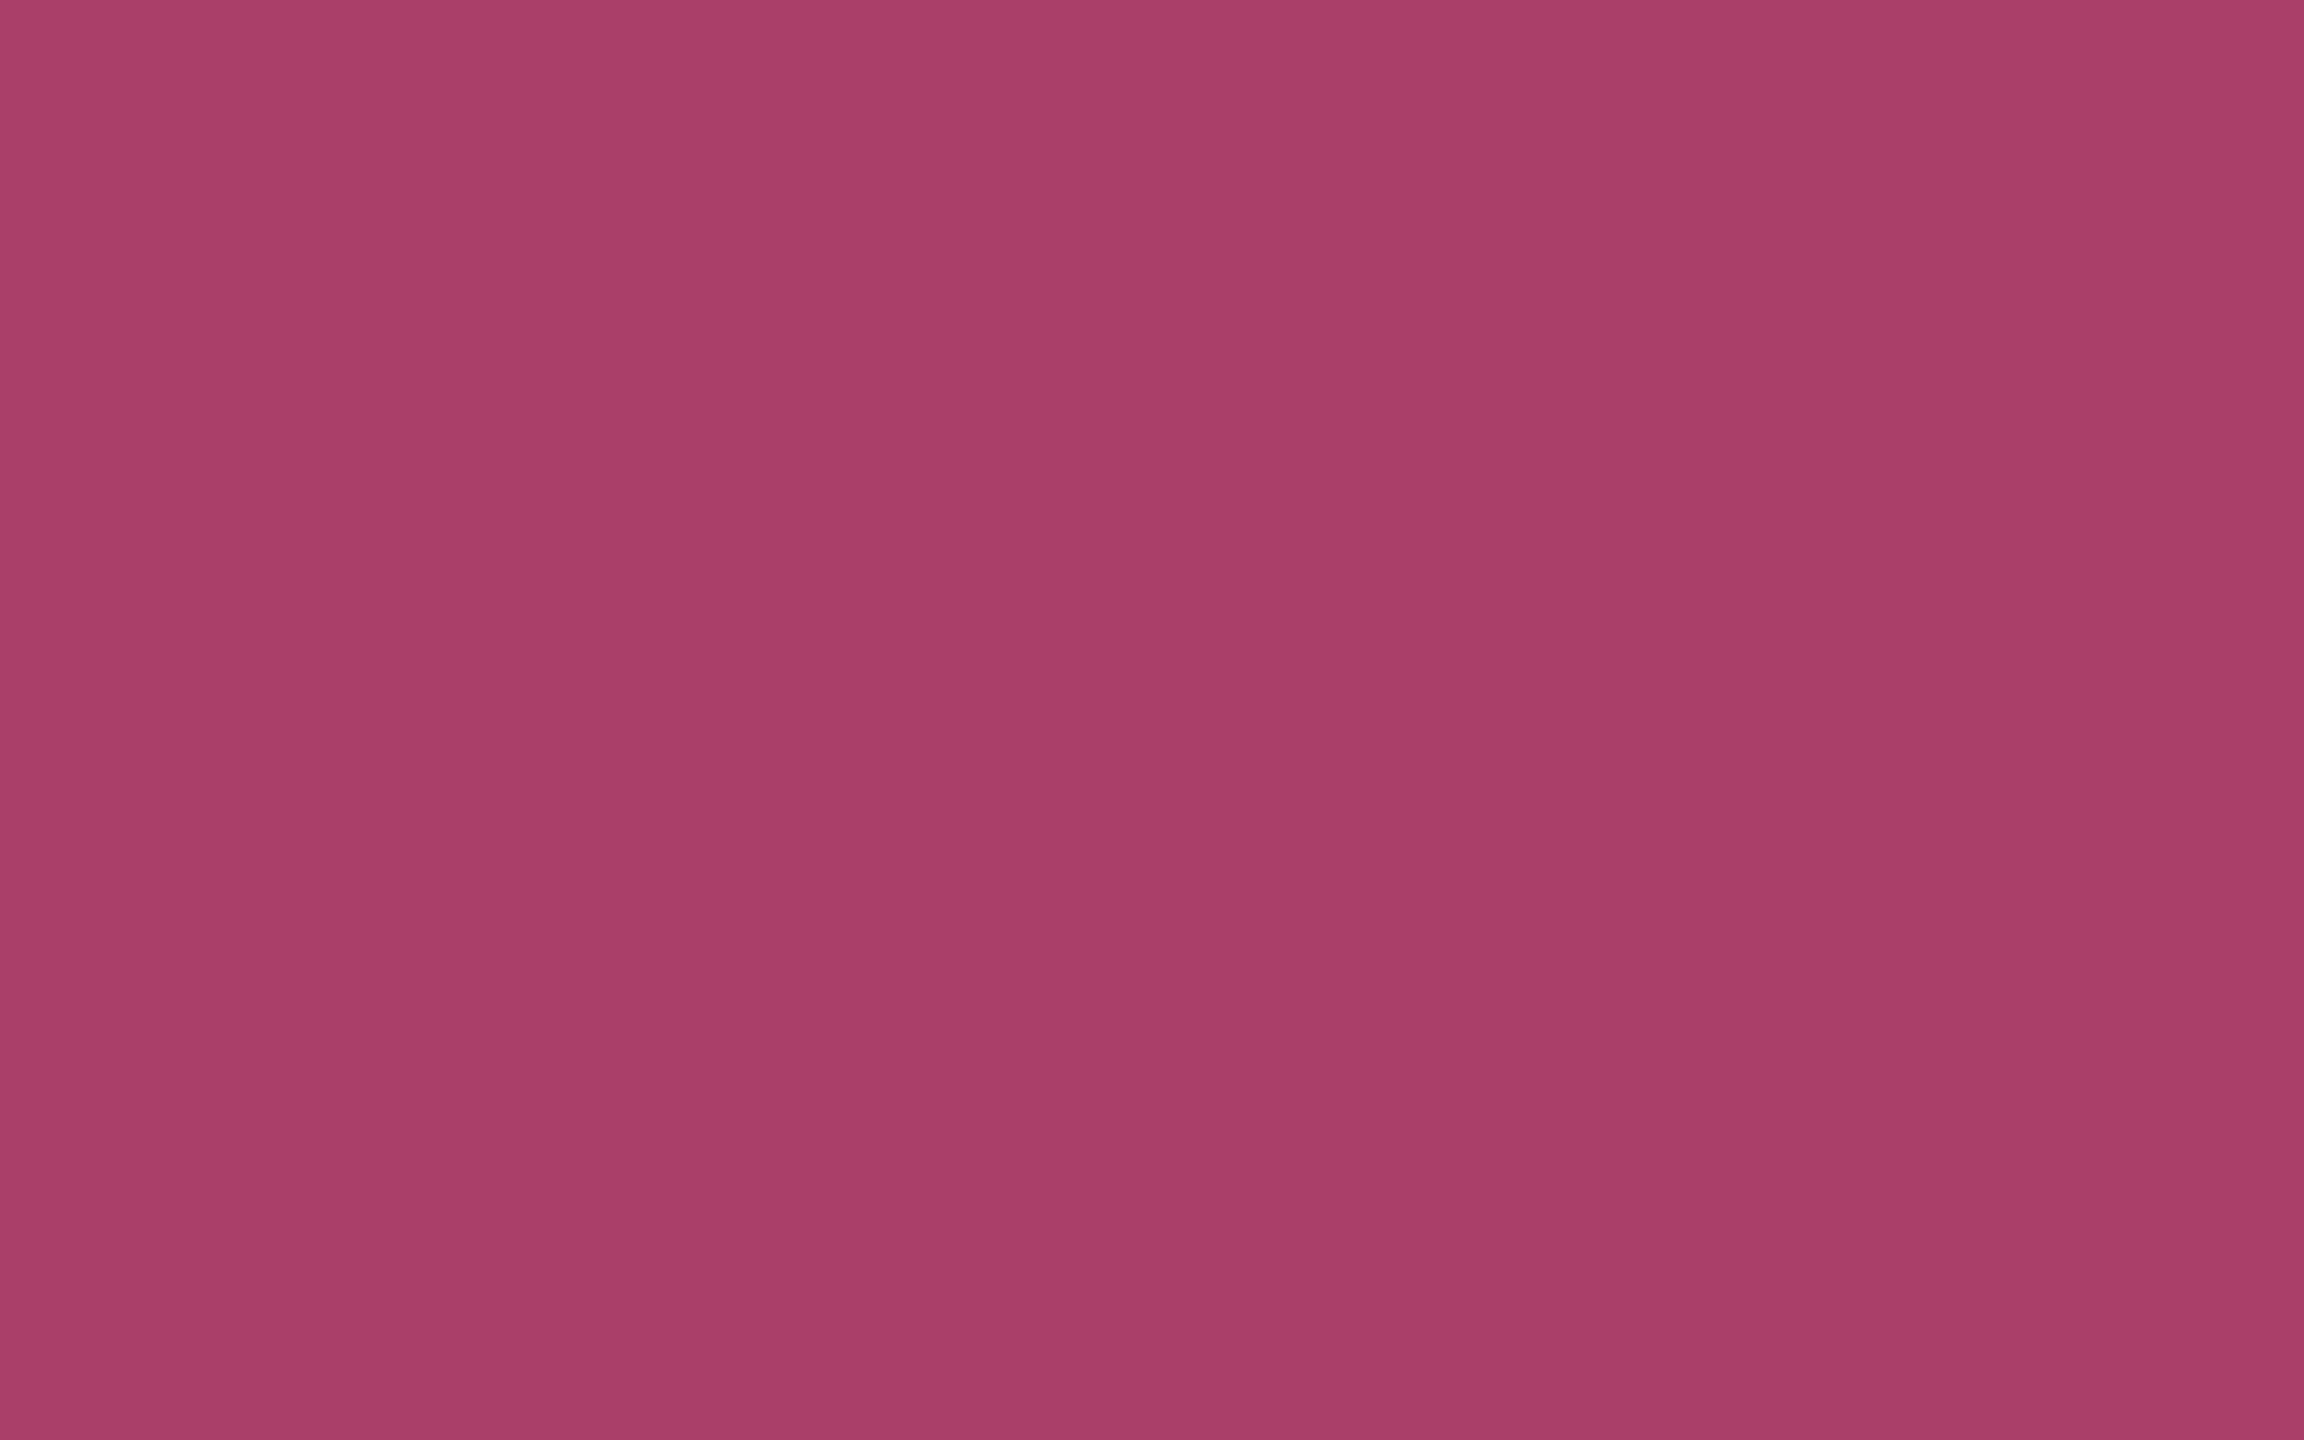 2304x1440 Medium Ruby Solid Color Background